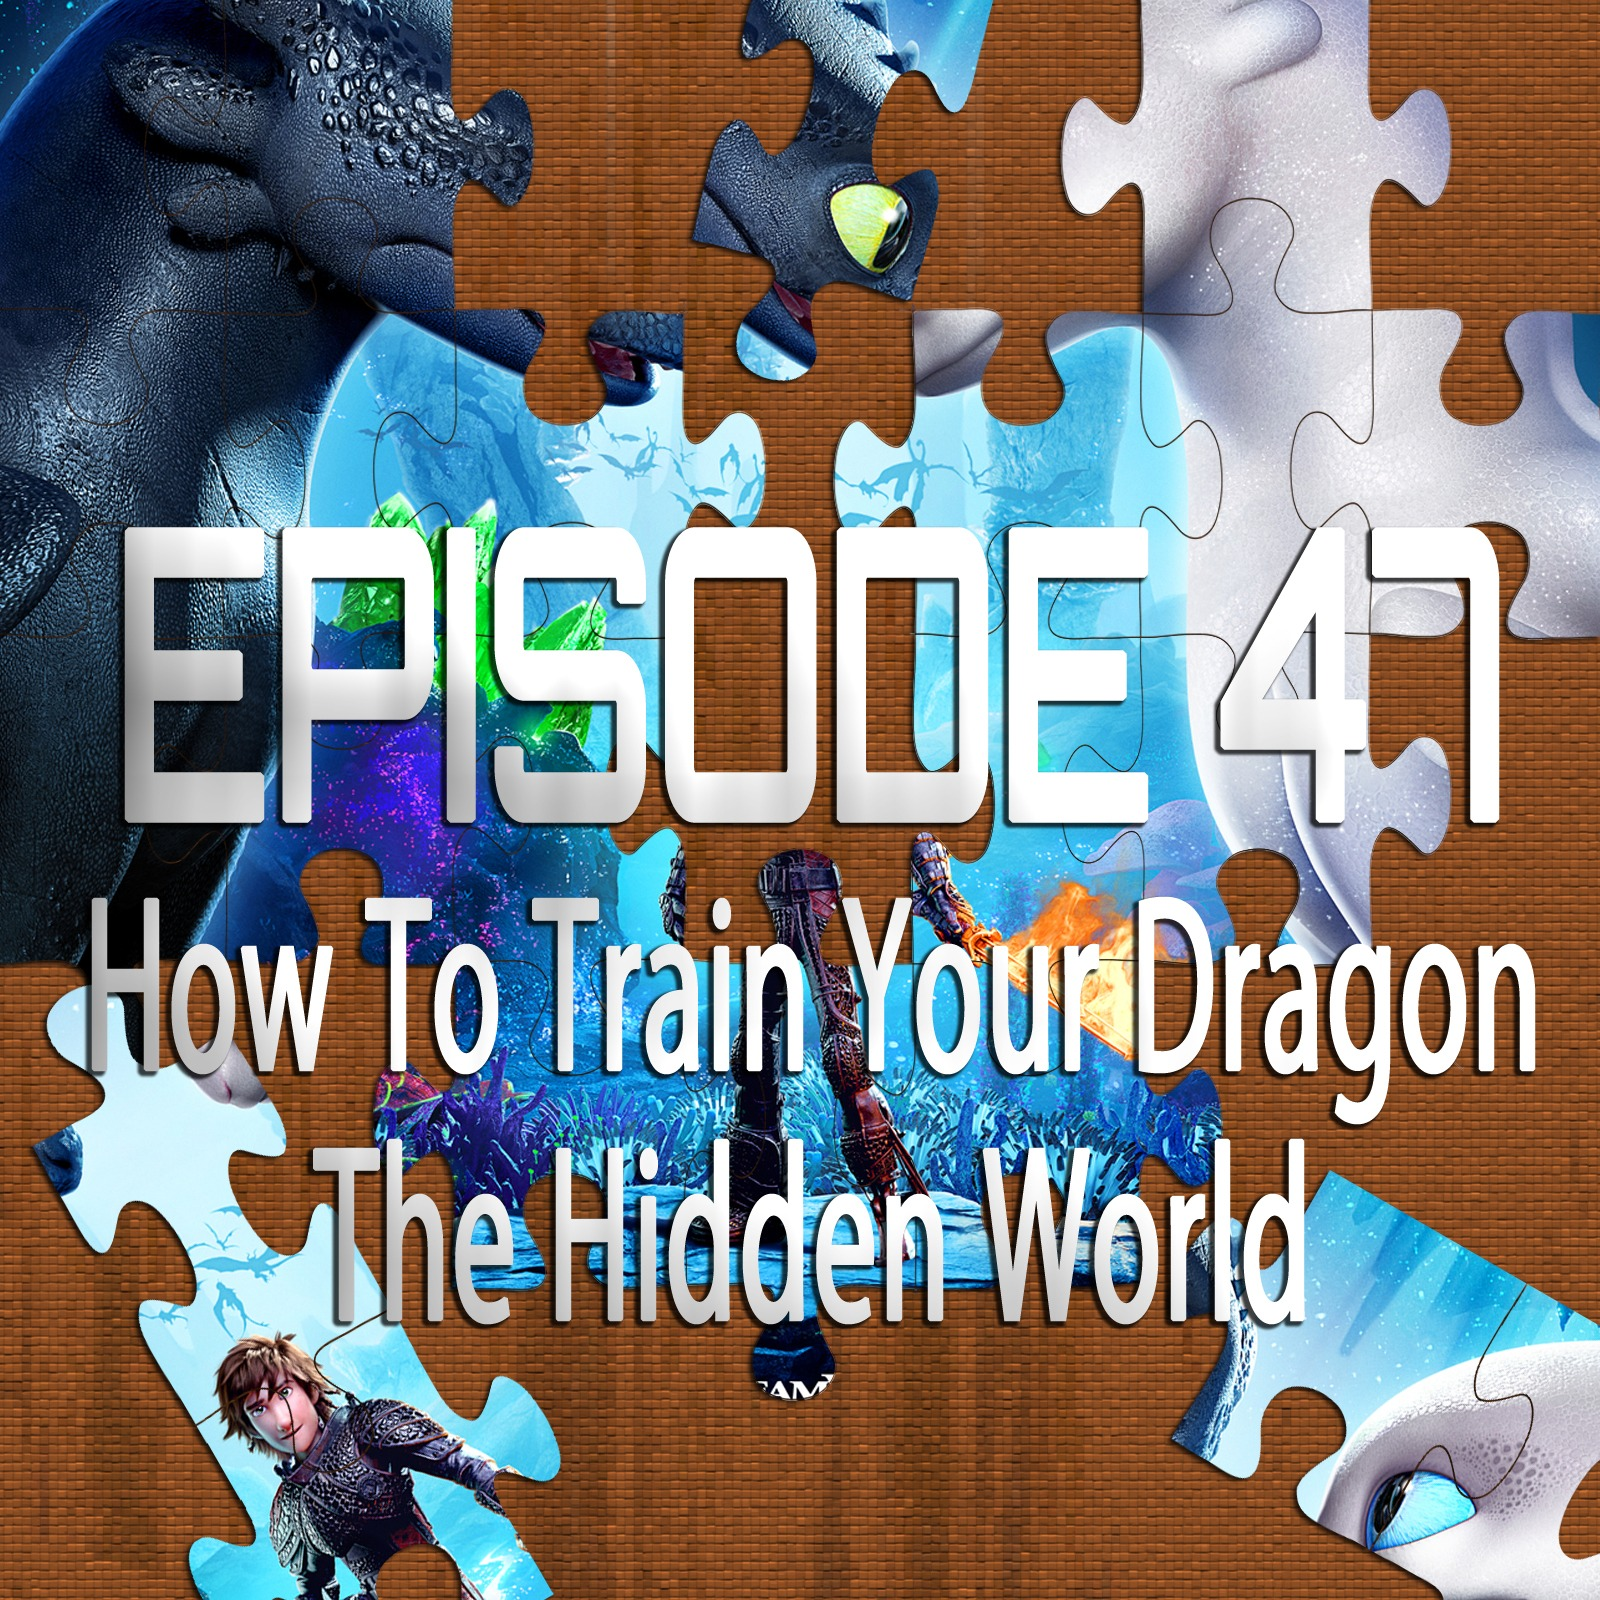 How To Train Your Dragon: The Hidden World (Featuring Ryan Daugherty)